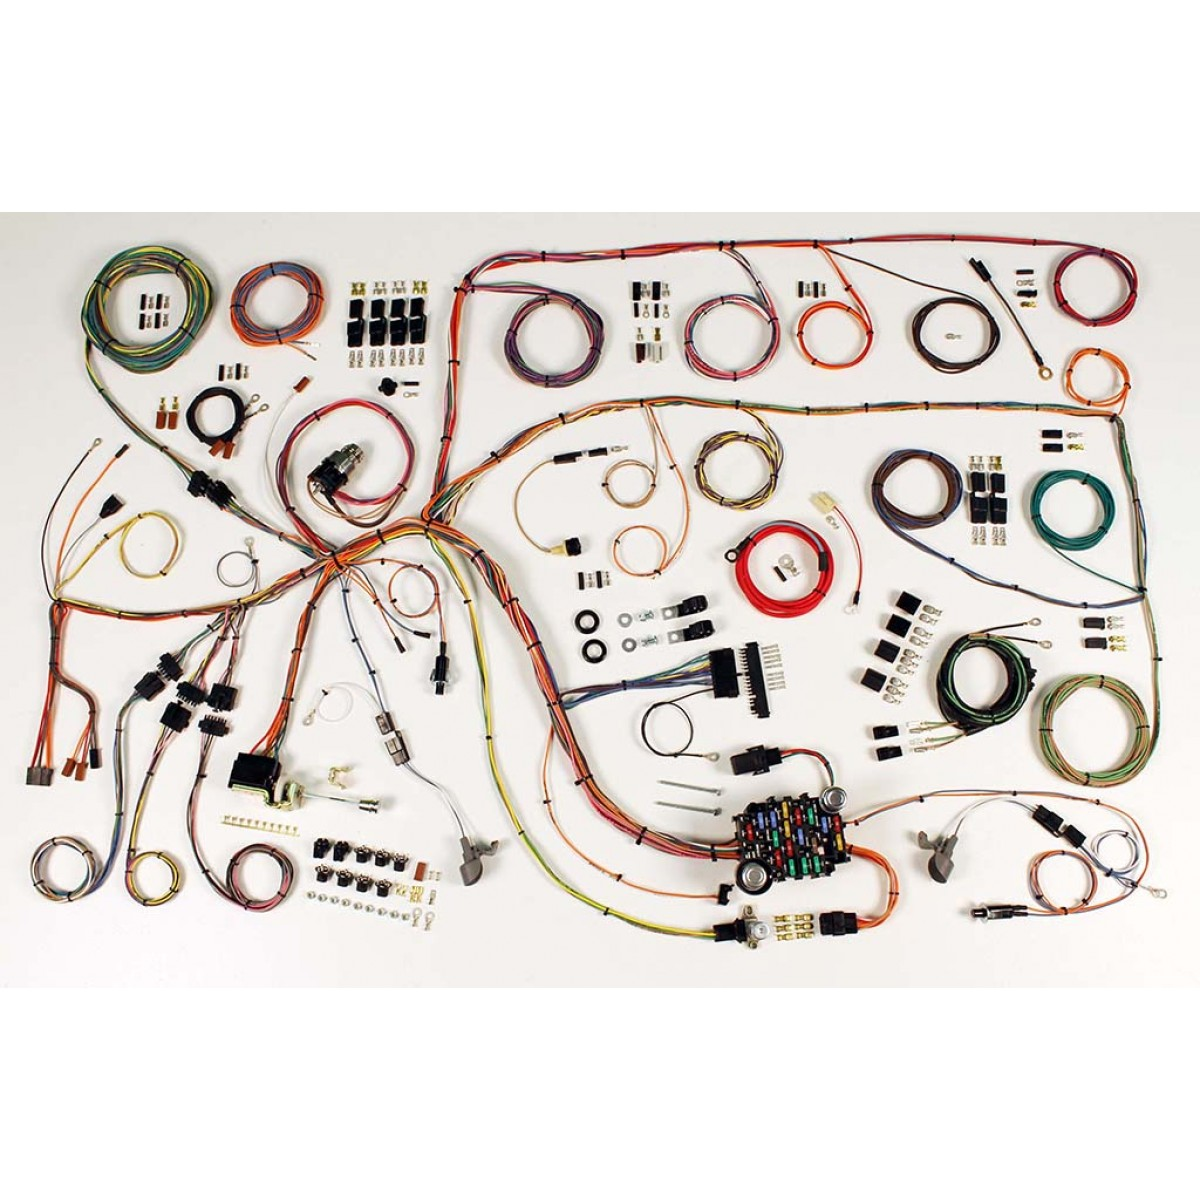 F100 Wiring Harness Library 1960 Ford Thunderbird Diagram Complete Kit 1964 Falcon 1965 Mercury Comet